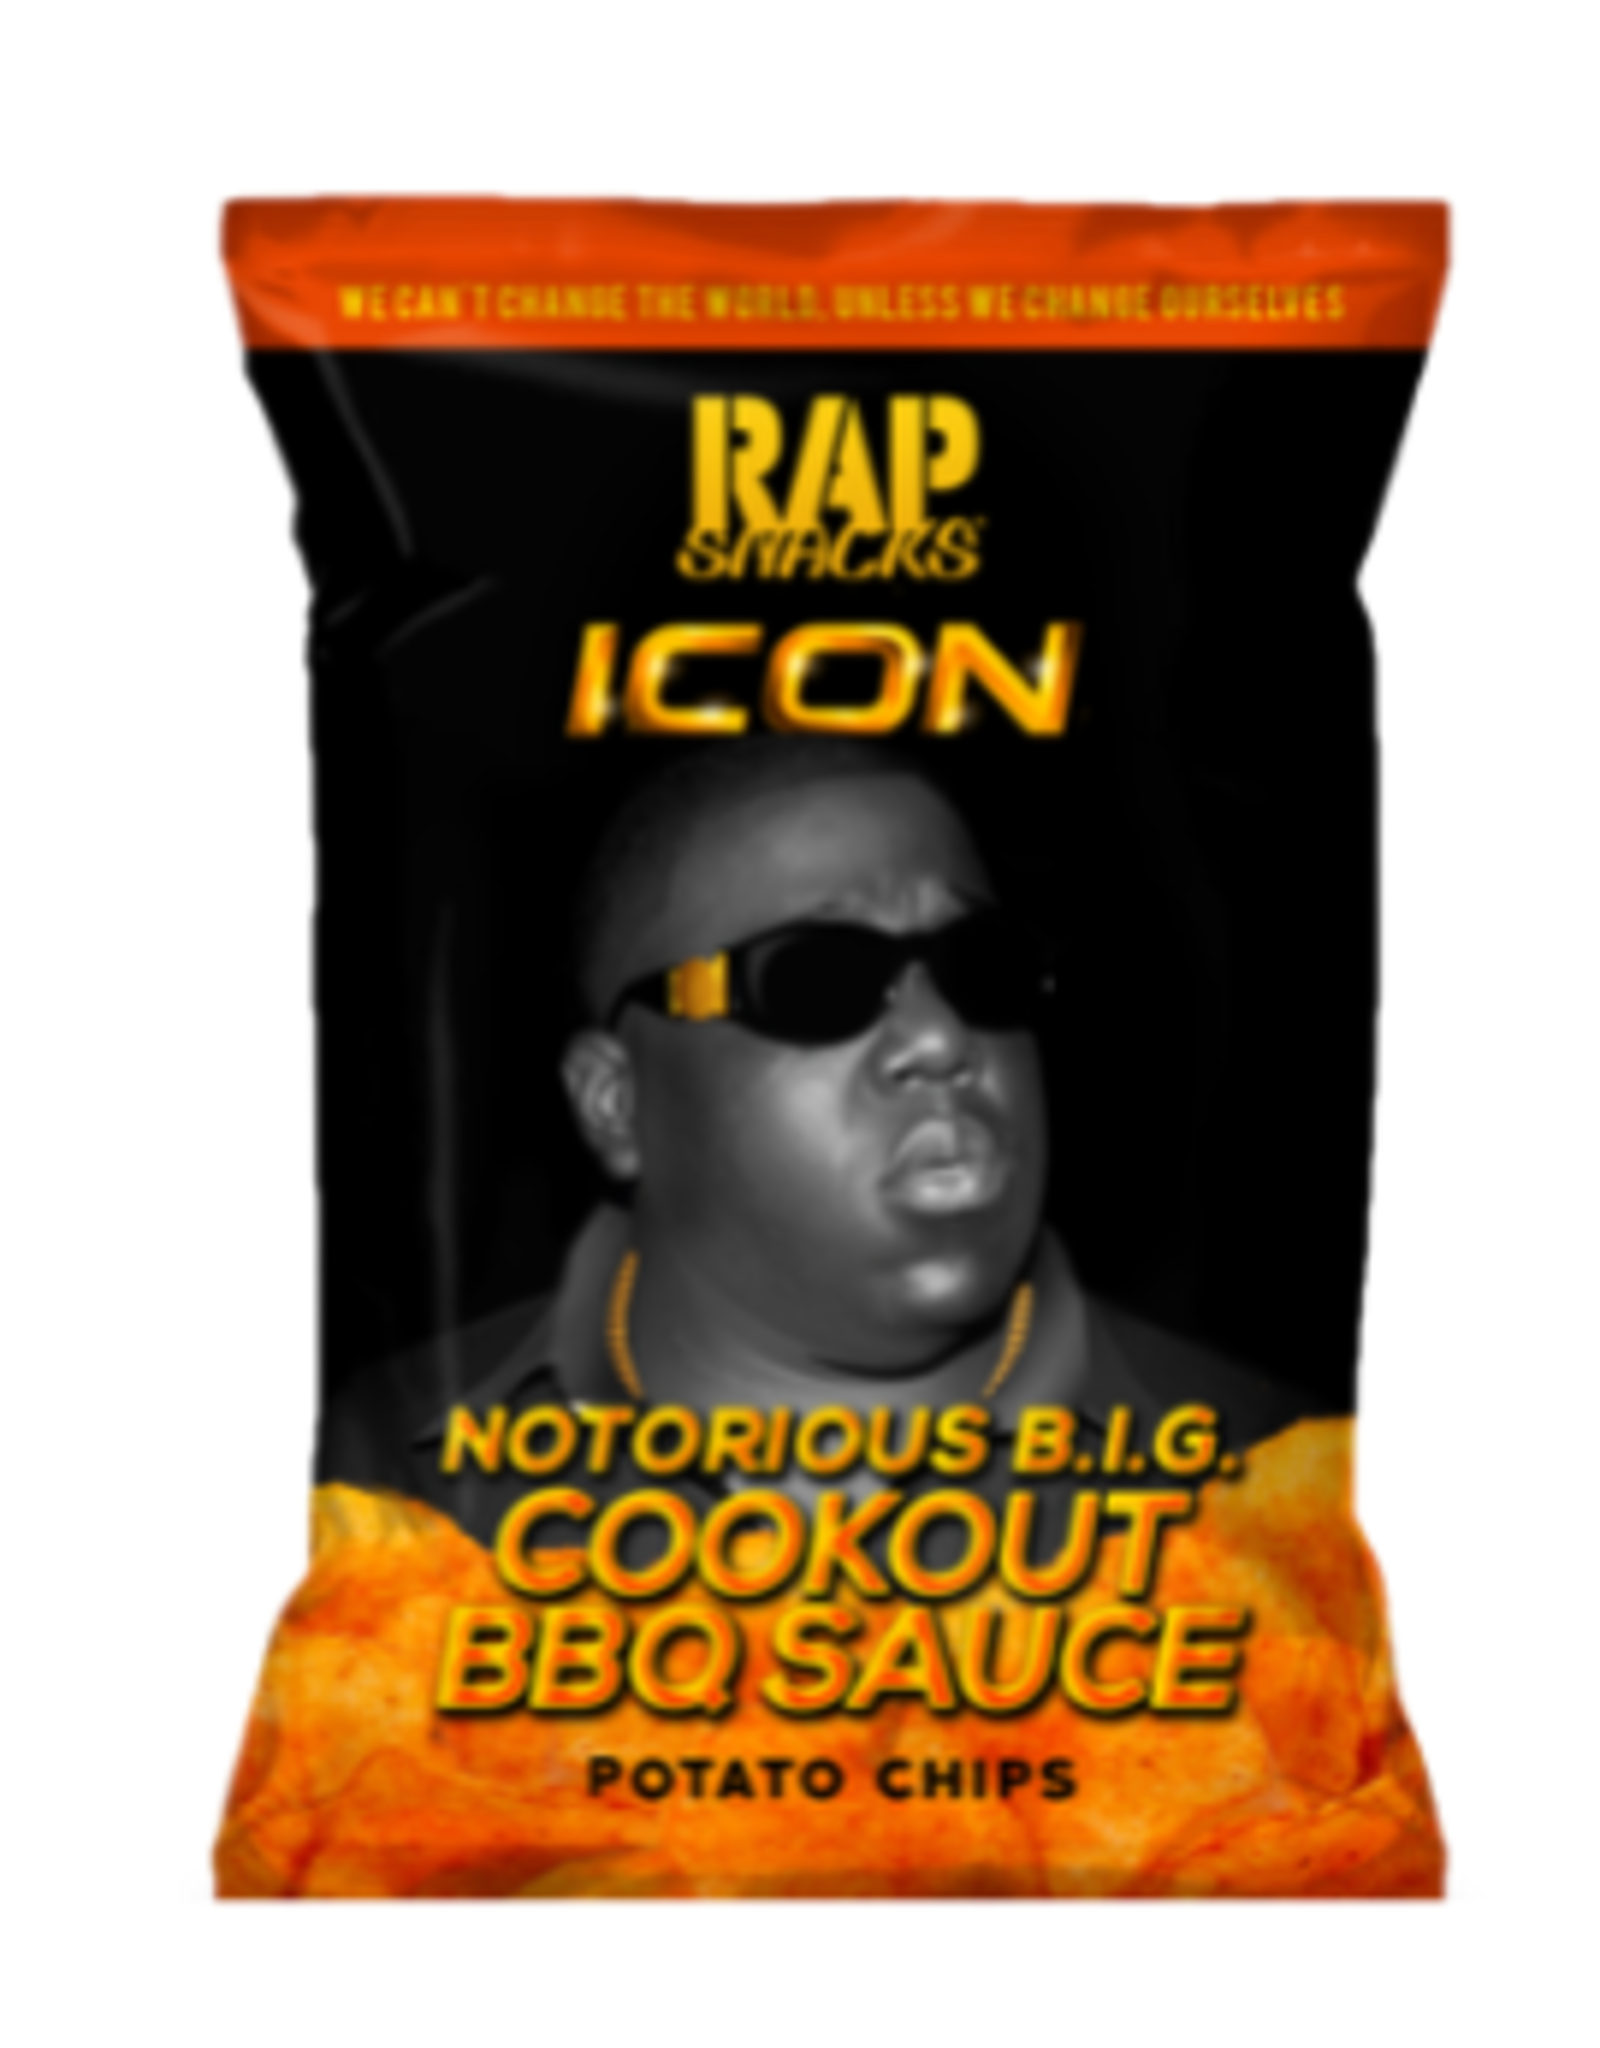 Rap Snacks ICON - Notorious B.I.G. - Cookout BBQ Sauce Potato Chips - 78g